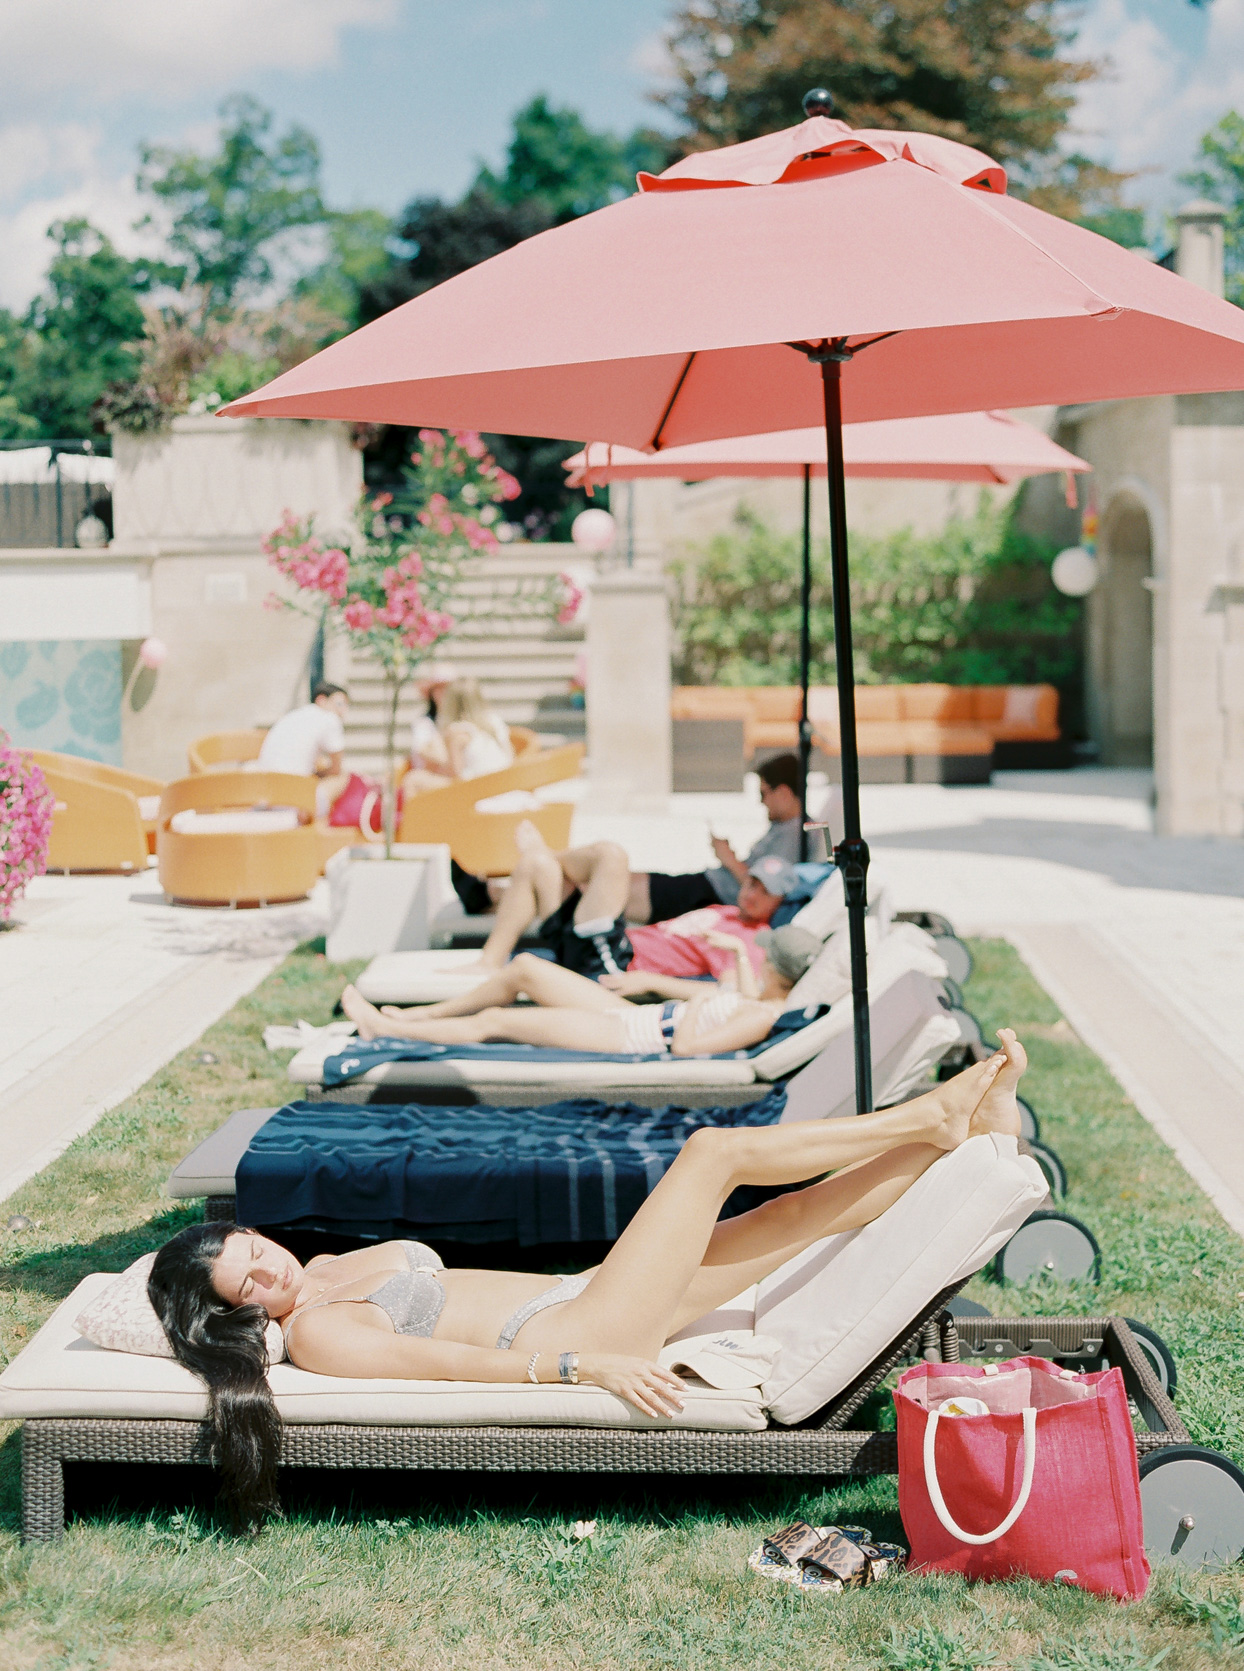 wedding guests lounging on pool chairs